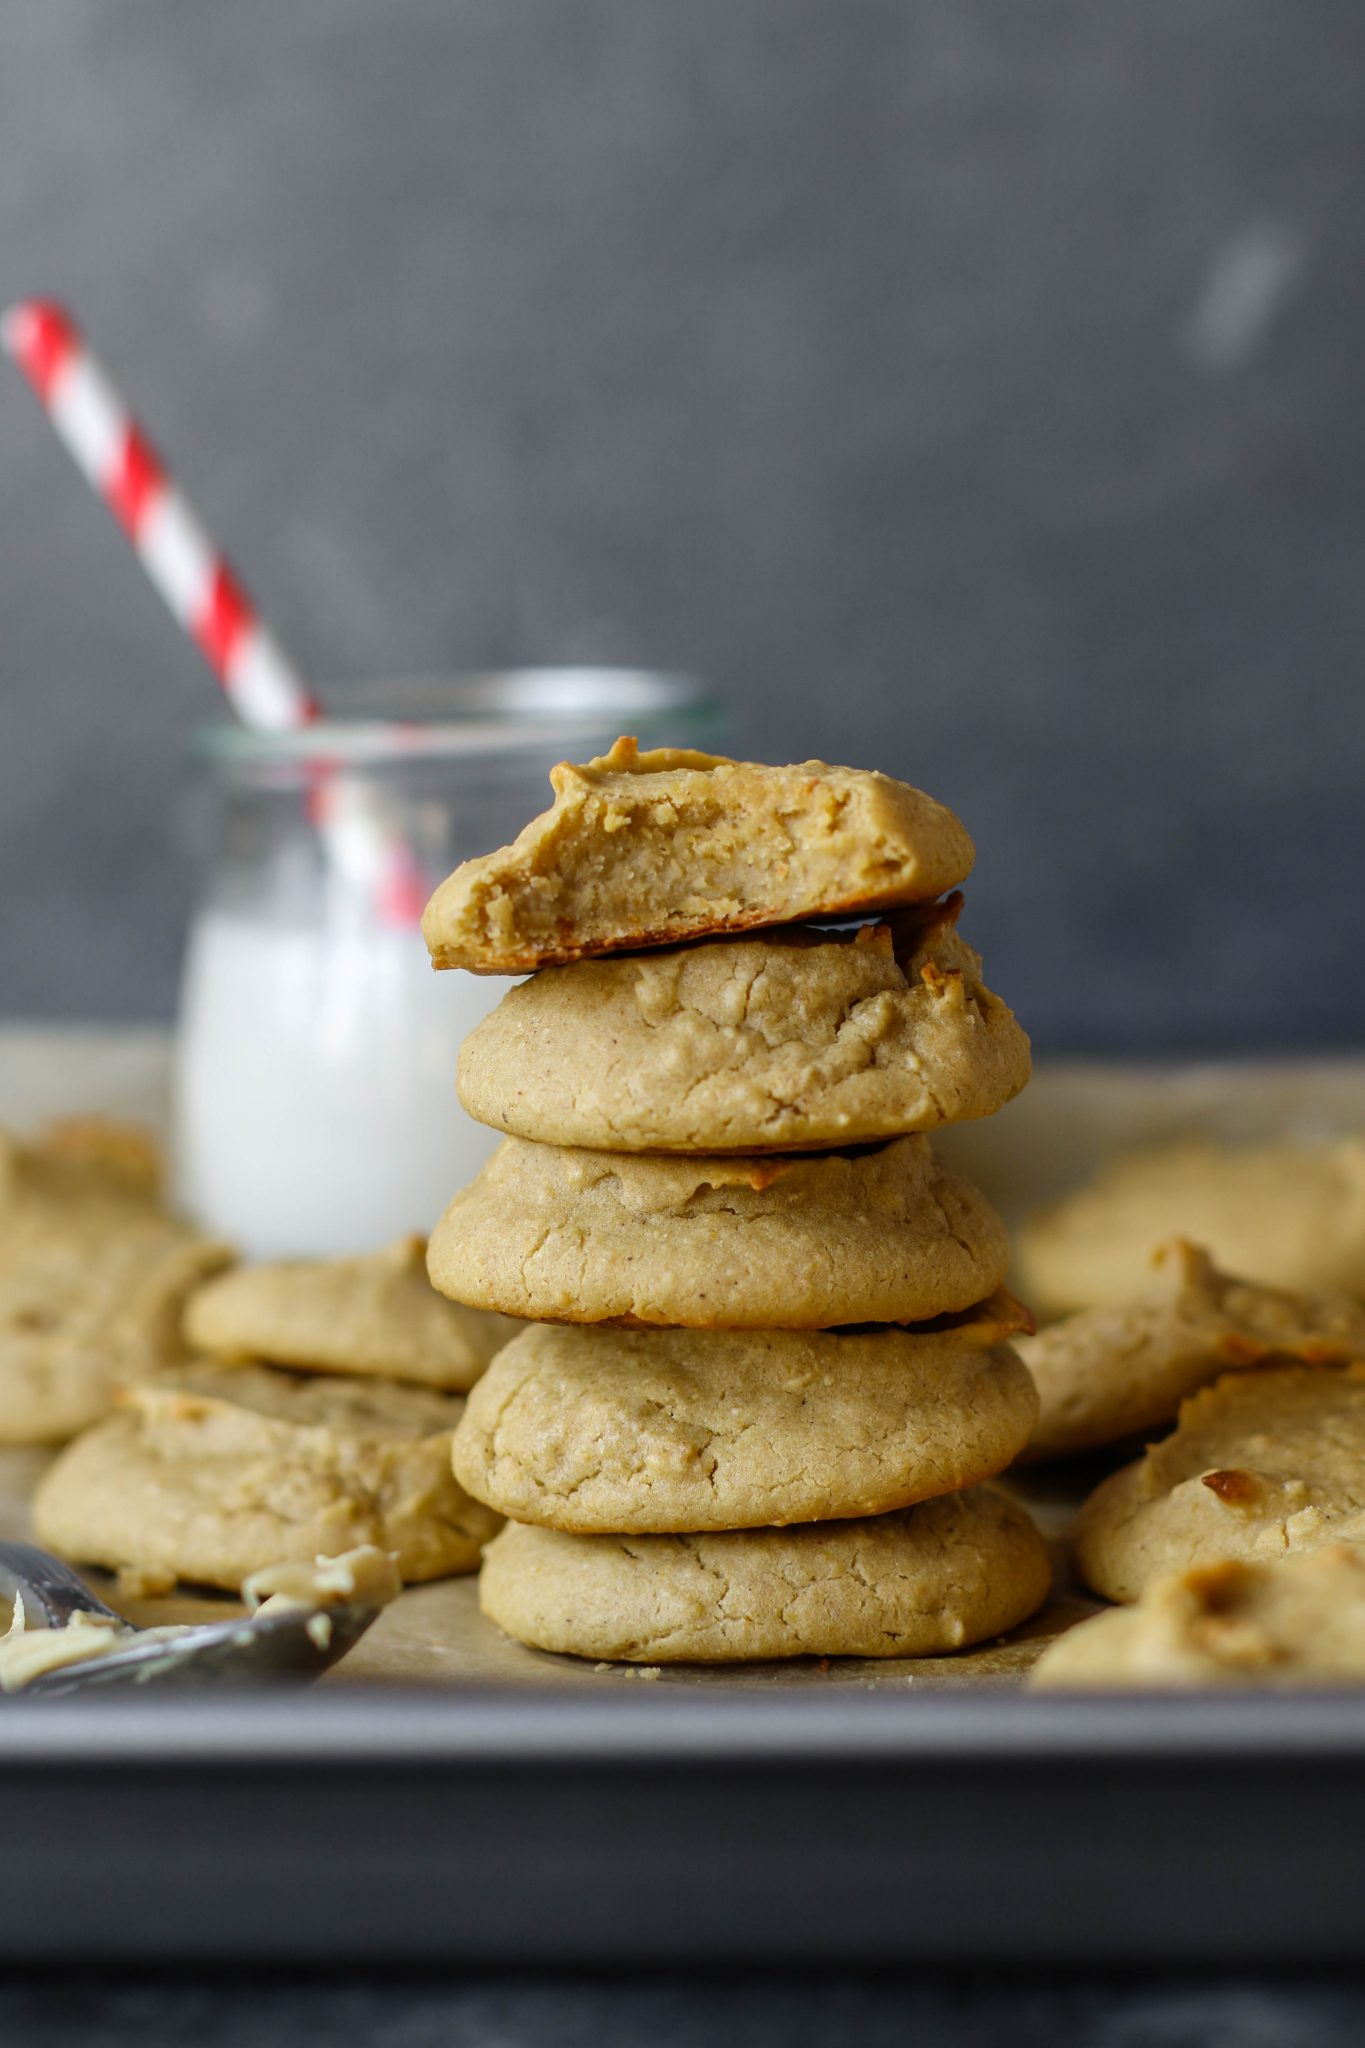 Cashew Butter Chickpea Snack Cookies by Flora & Vino